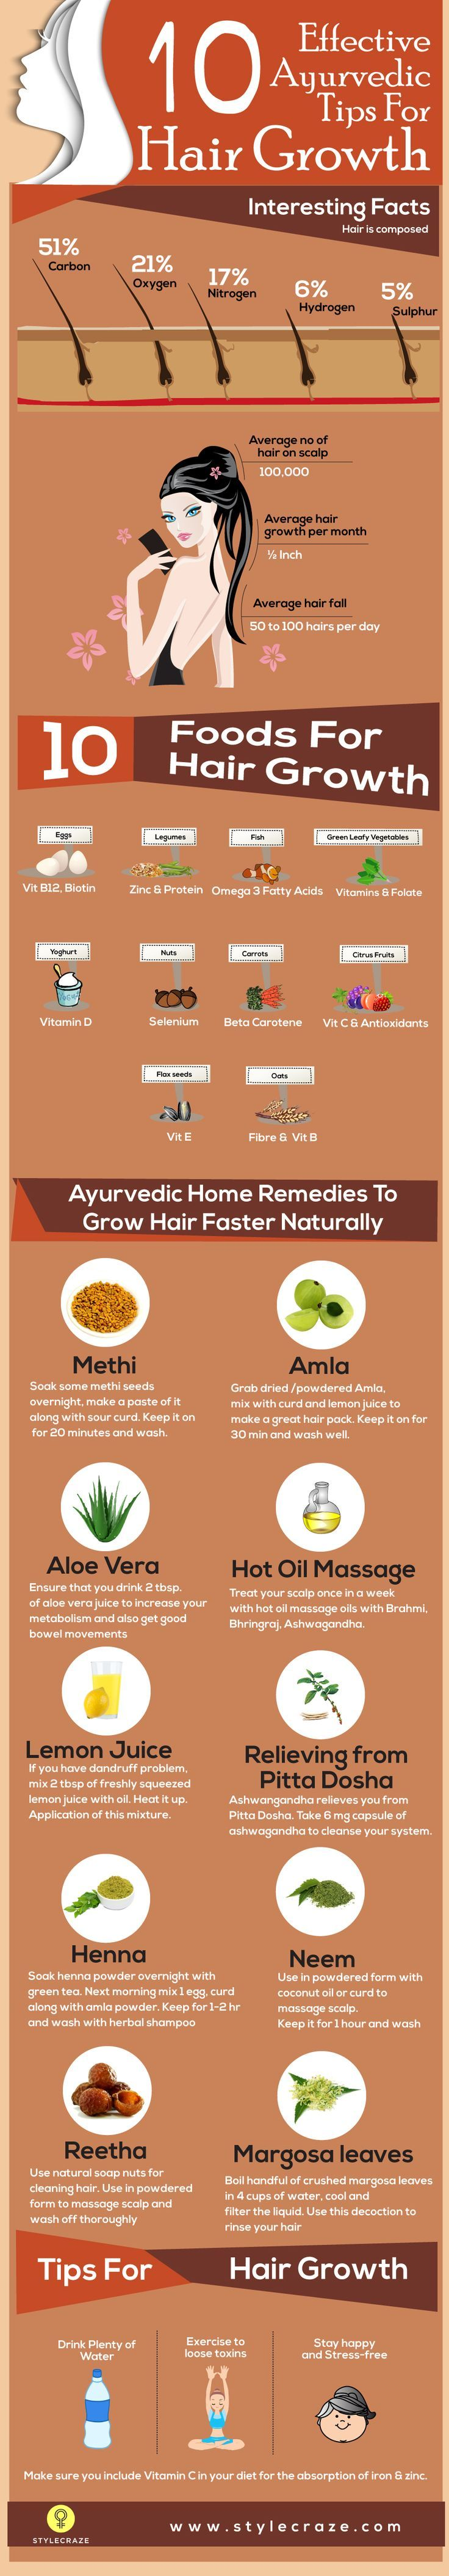 19 Effective Ayurvedic Tips For Hair Fall & Hair Regrowth